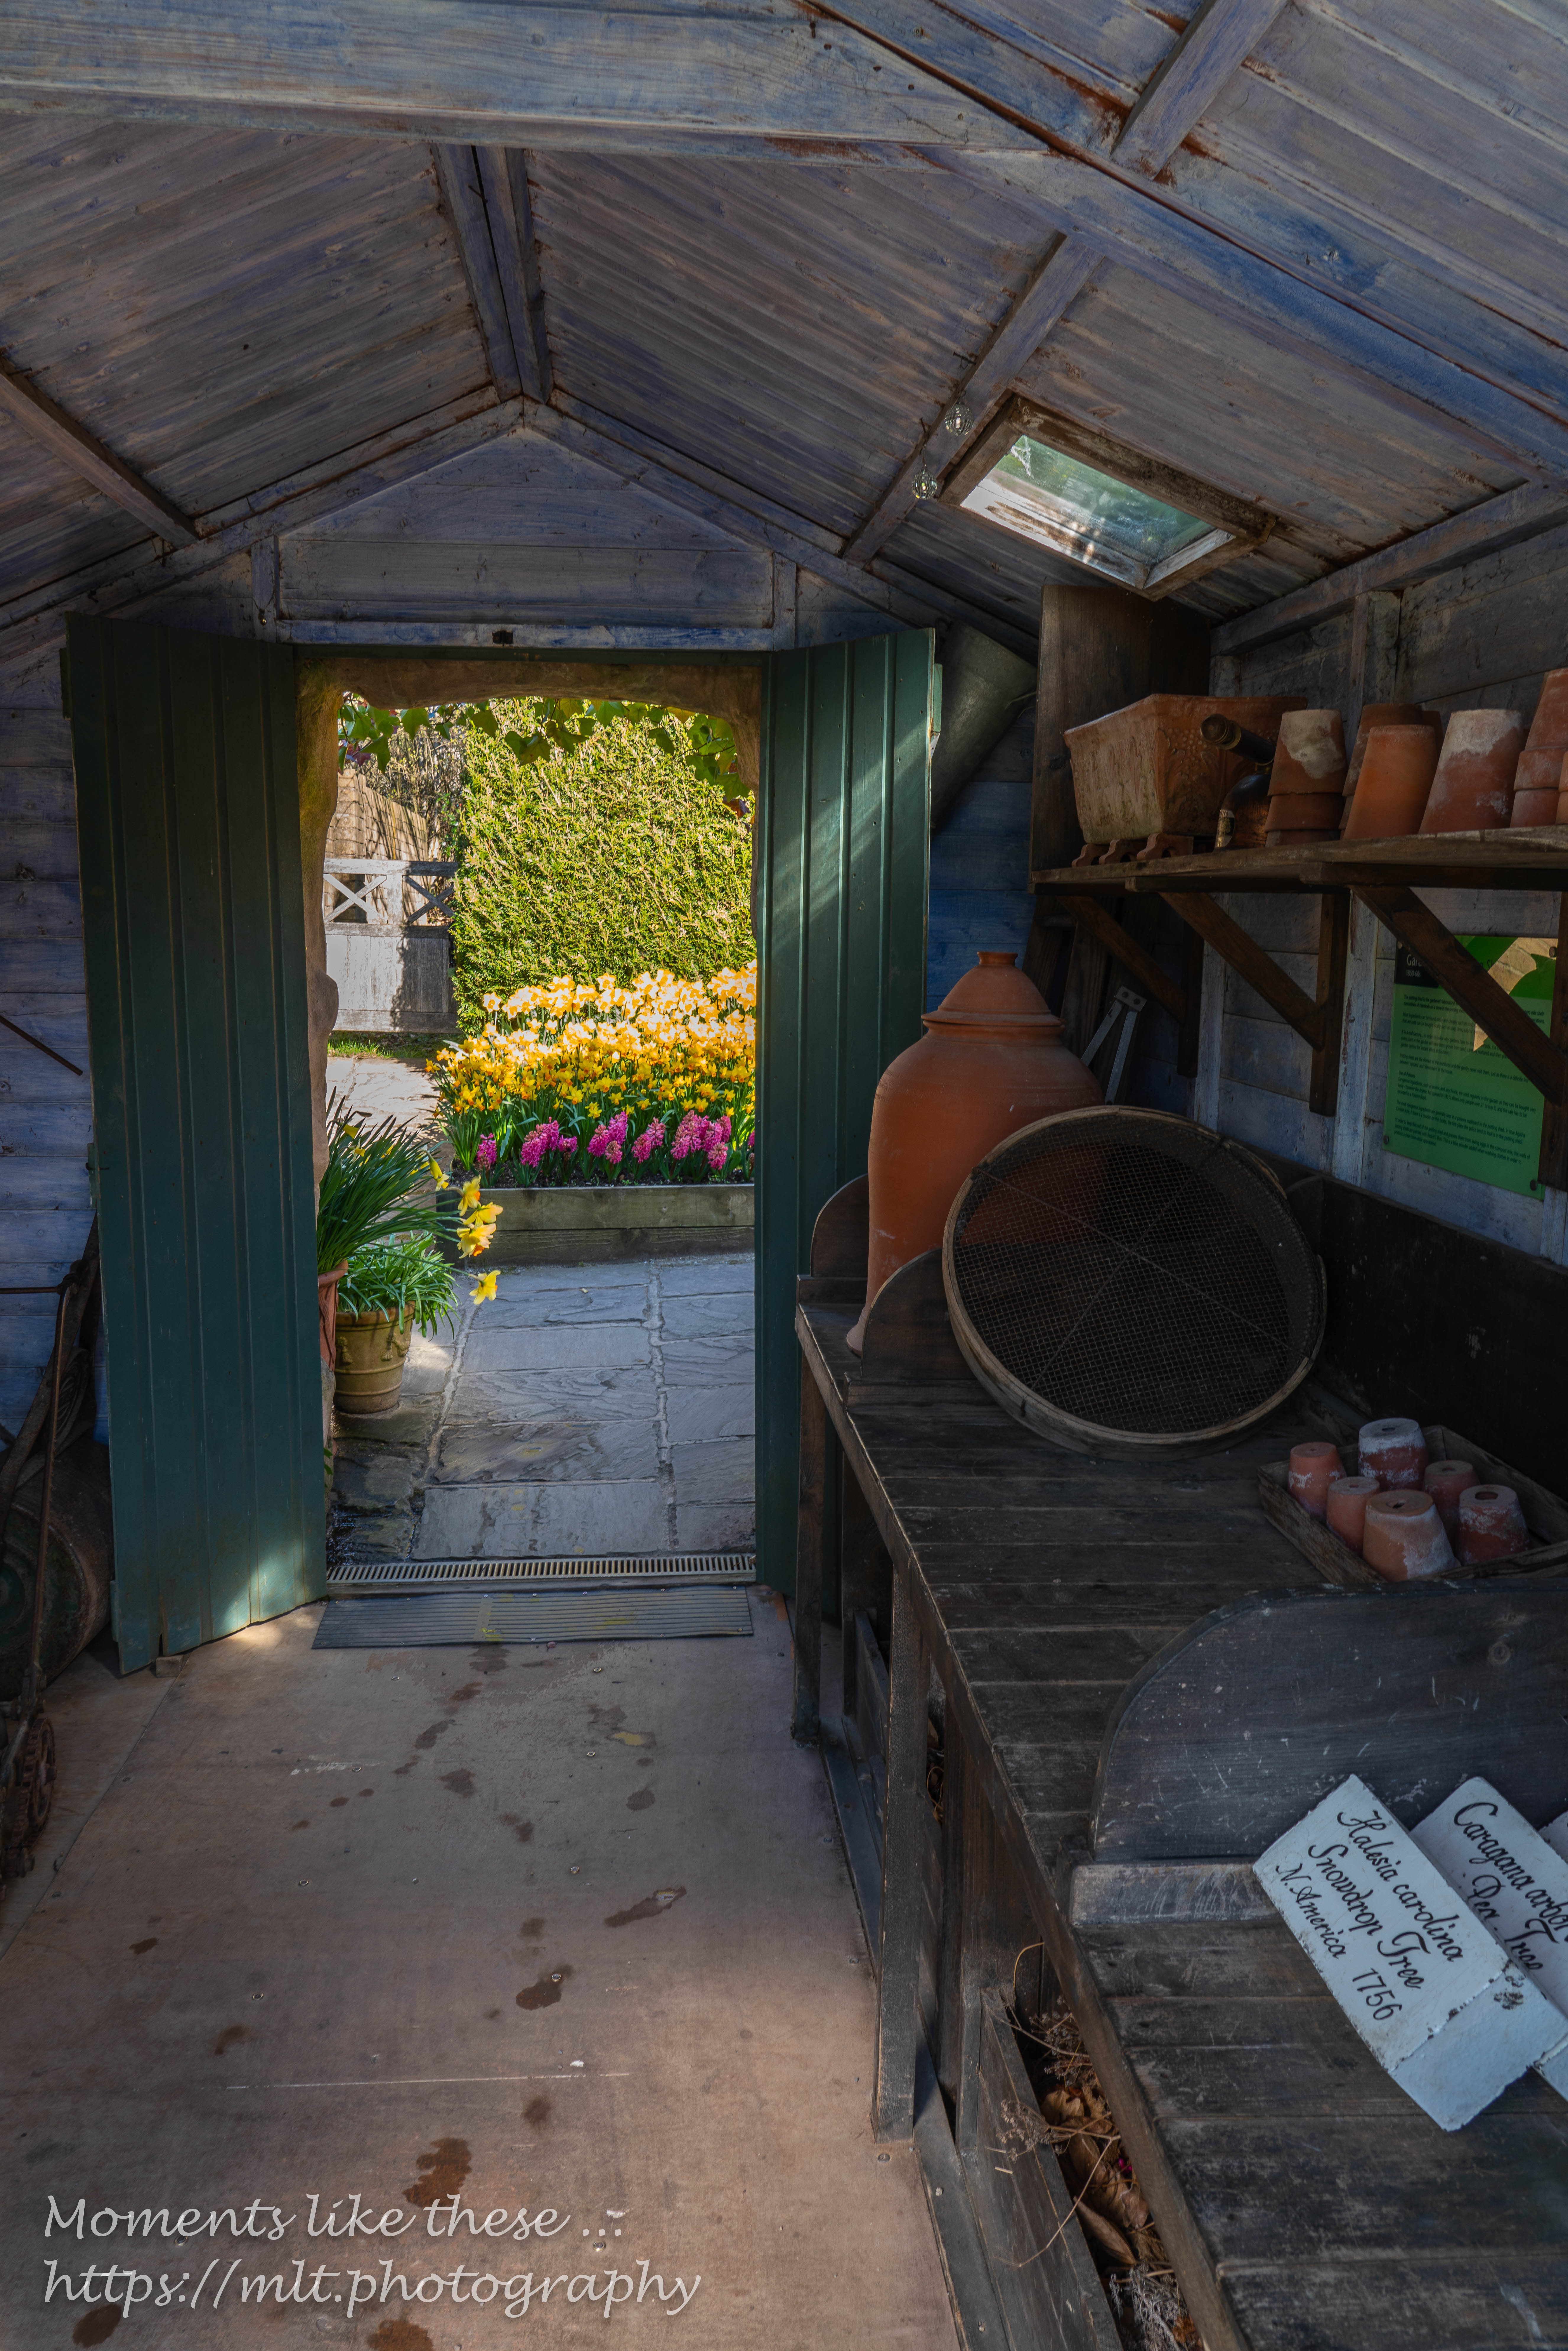 The Poitting Shed